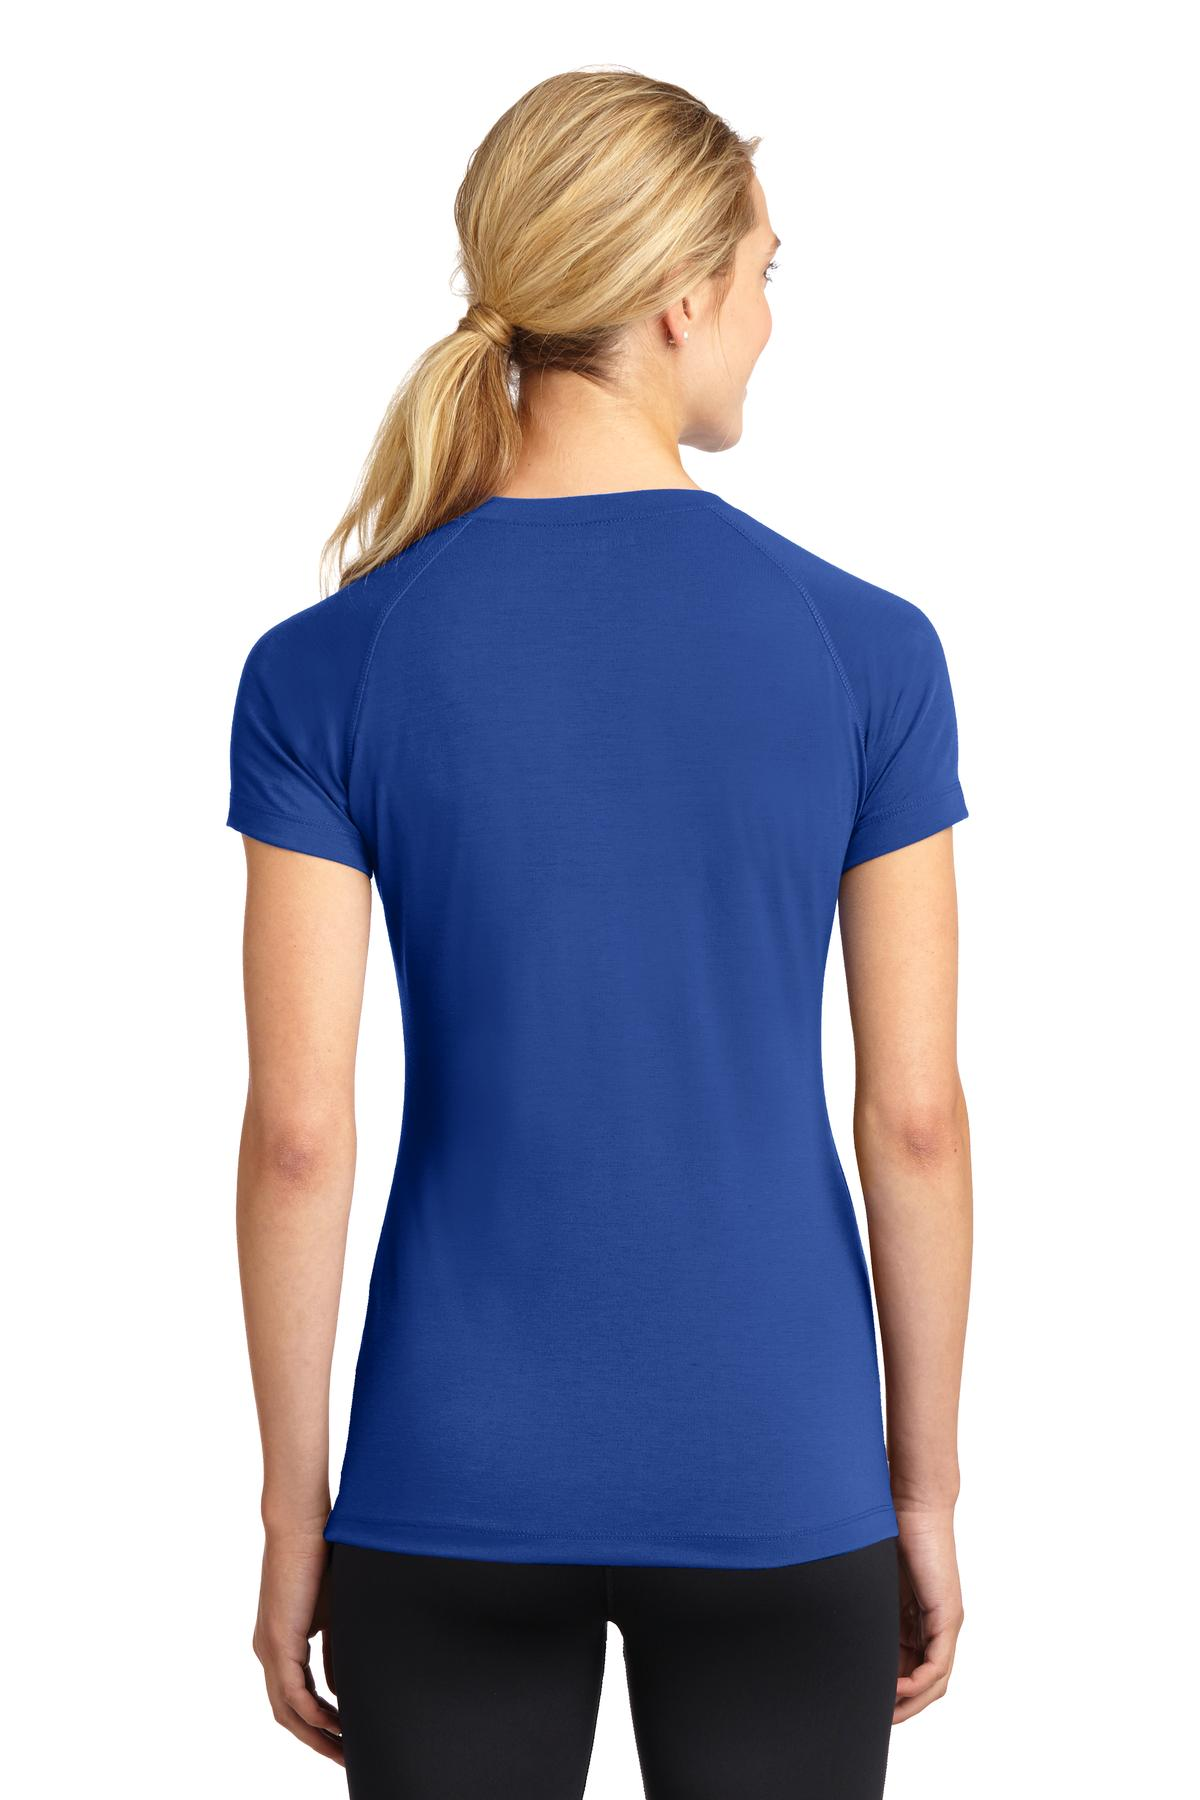 Ladies Performance V-Neck - RCL3030